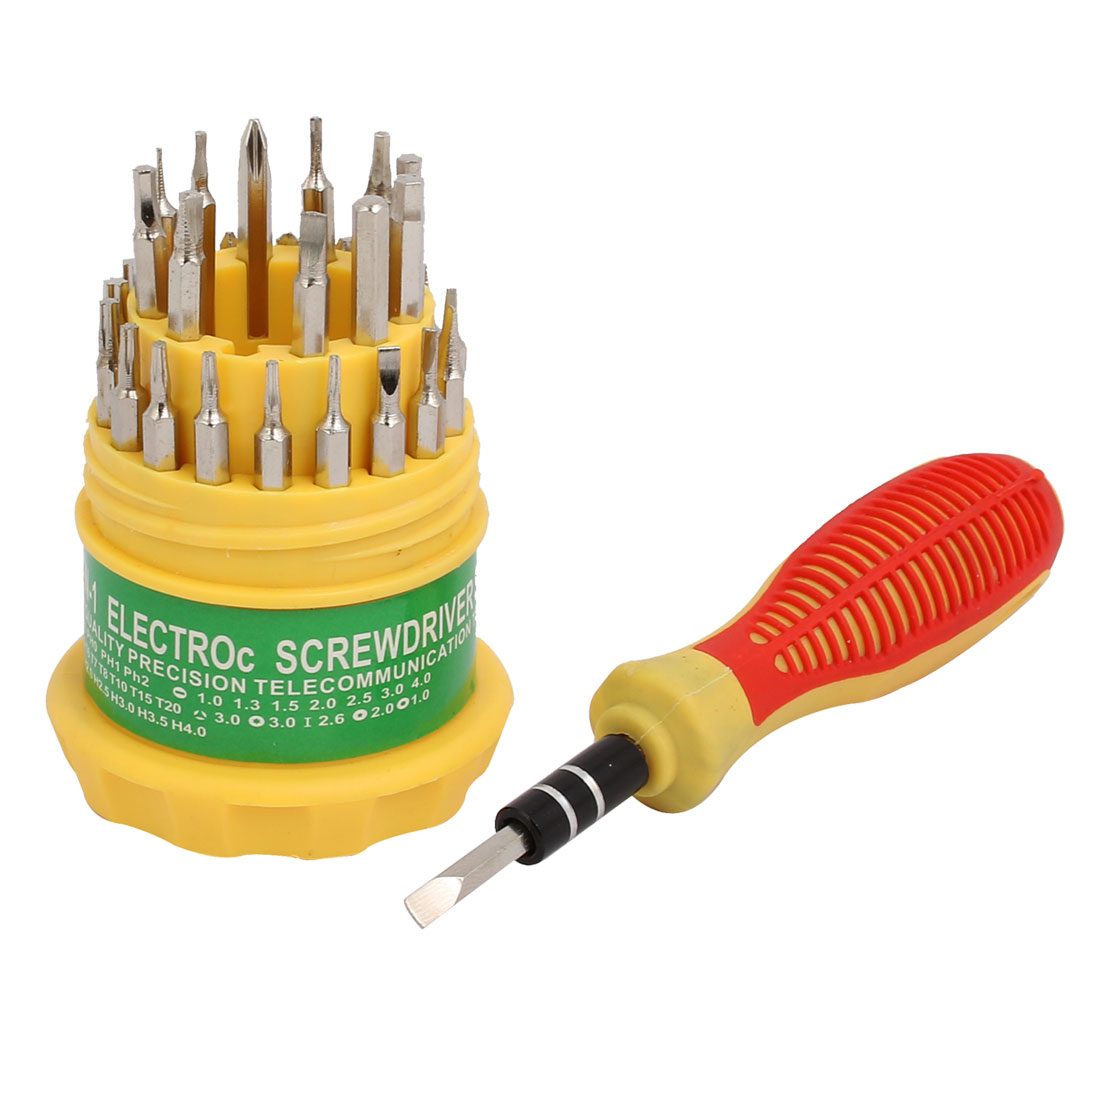 31 in 1 Nonslip Handle Hex Torx Slotted Tri-wing Magnetic Screwdrivers Bits Set